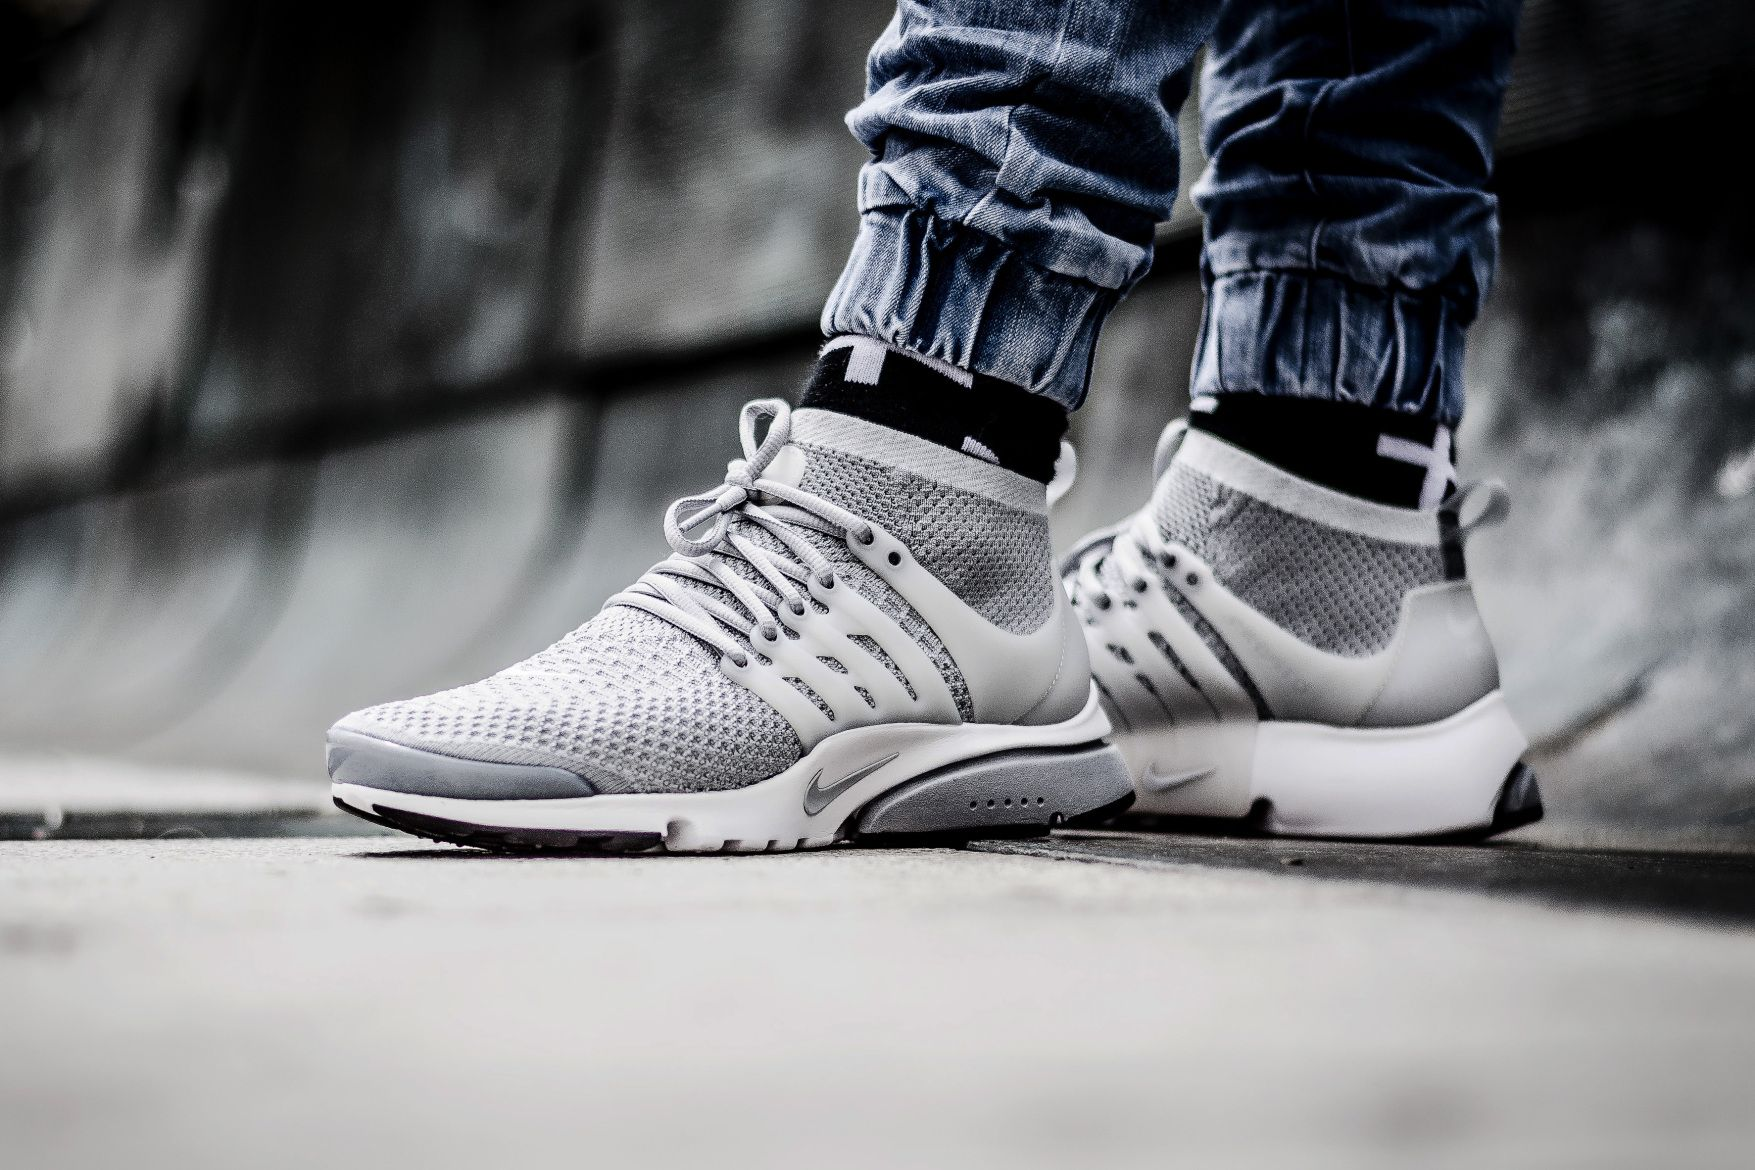 quality design 5661c 7a0e2 Urban Outfits   Footwear for Men    Skotta. Nike Air Presto Ultra Flyknit